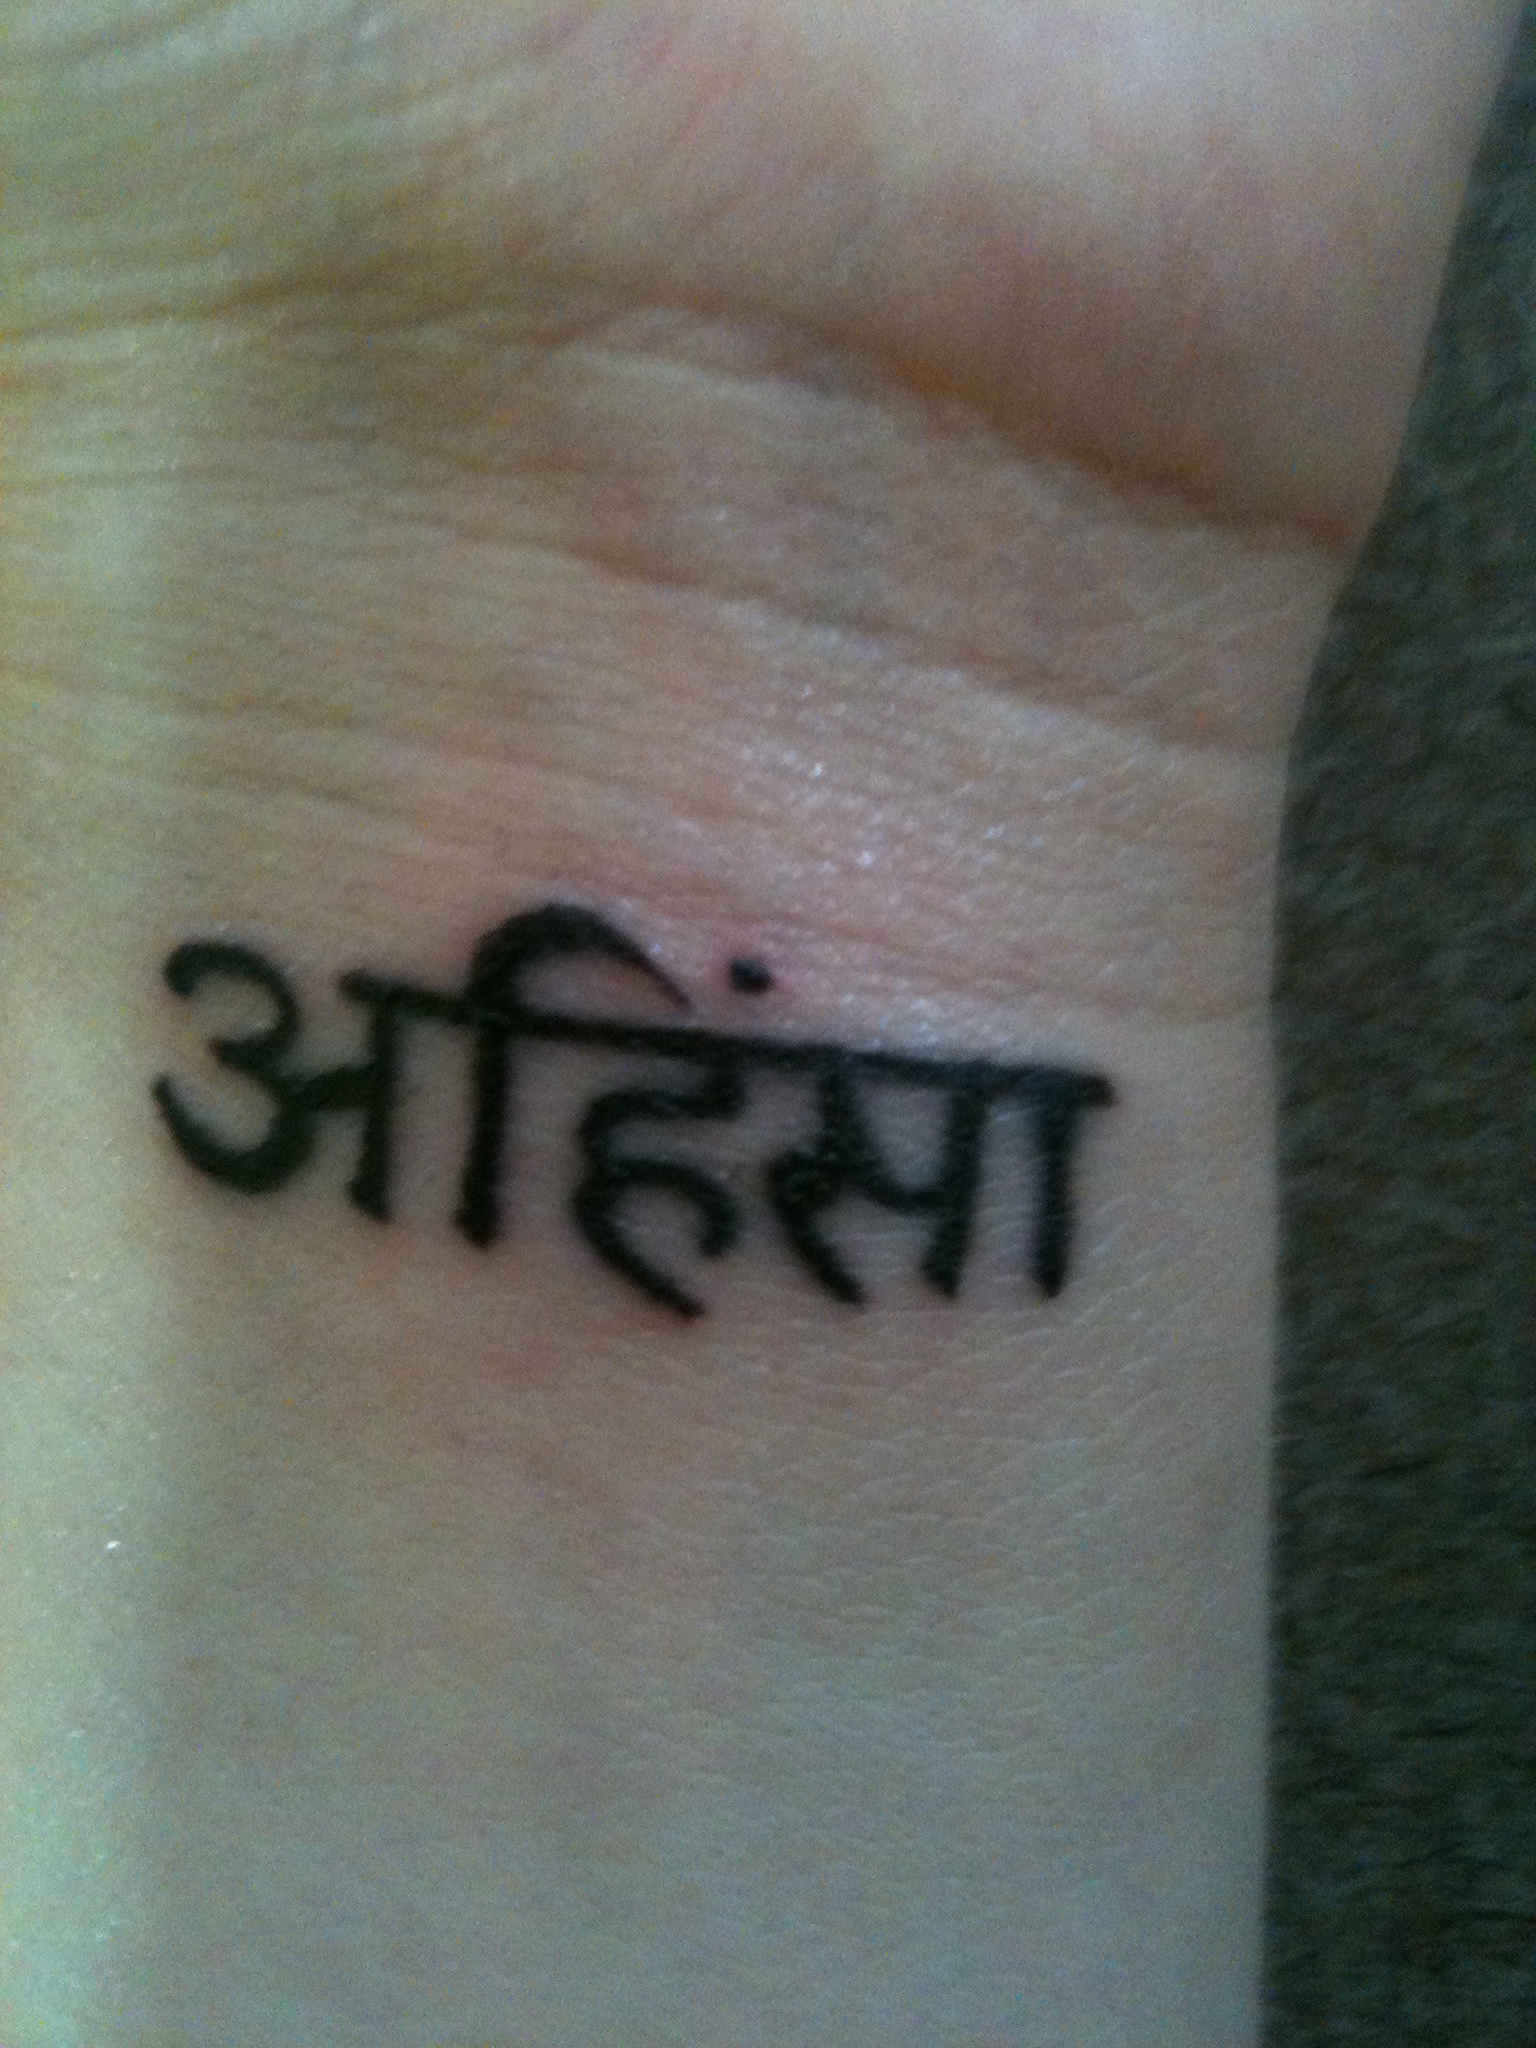 ahimsa meaning in english